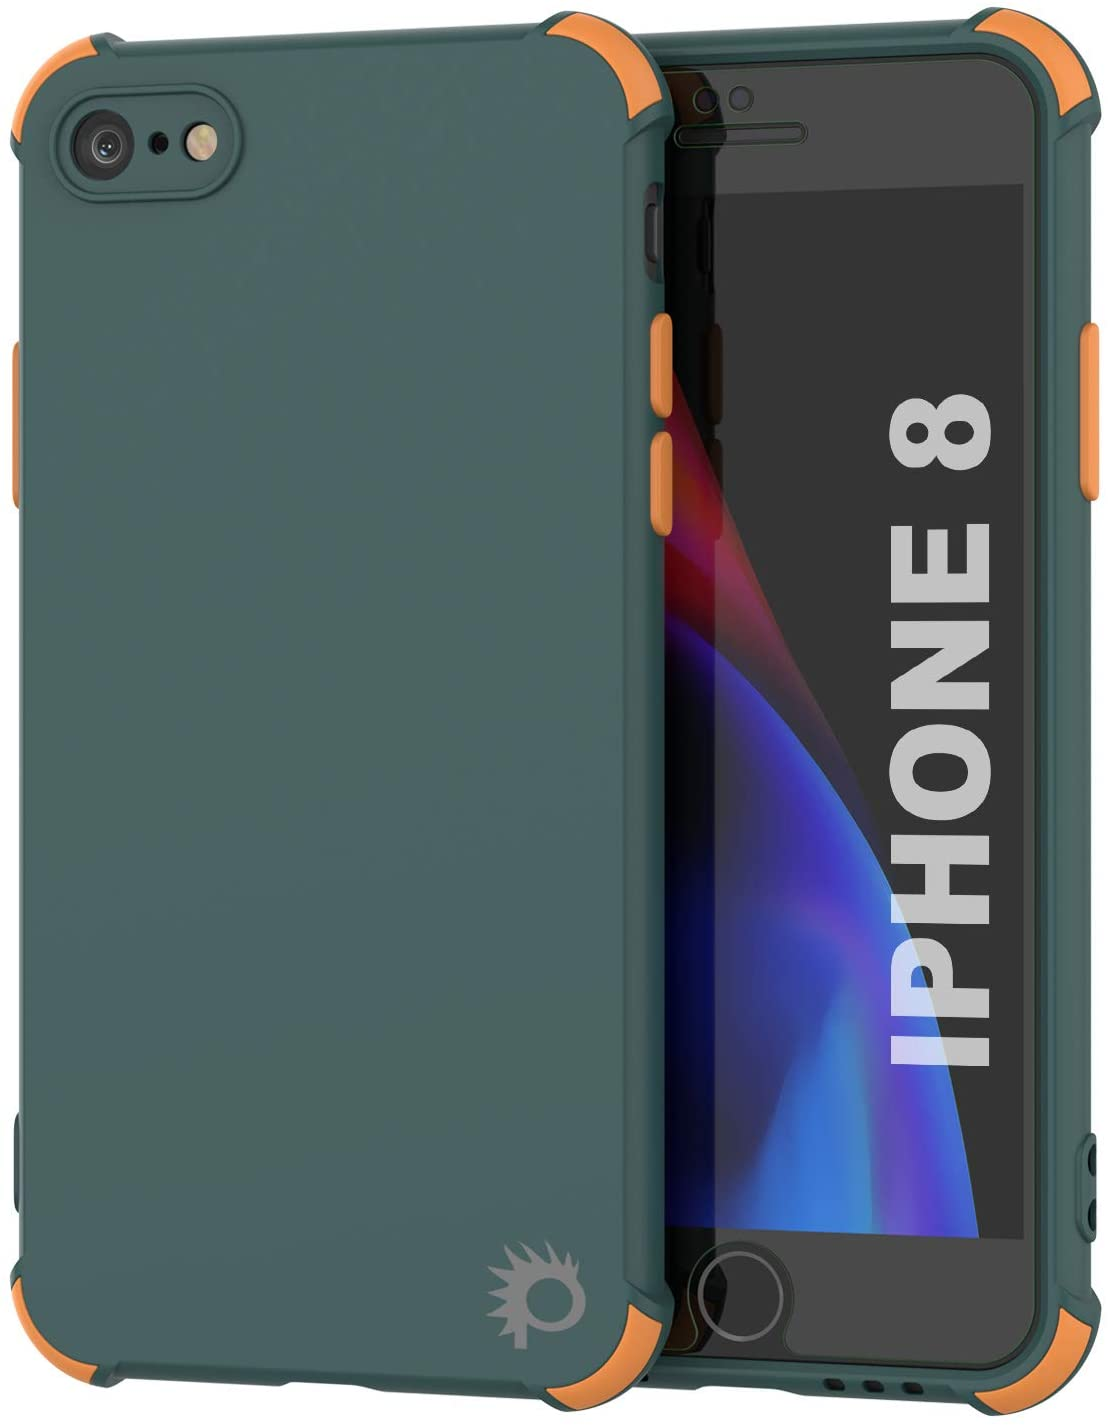 Punkcase Protective & Lightweight TPU Case [Sunshine Series] for iPhone 8 [Dark Green]